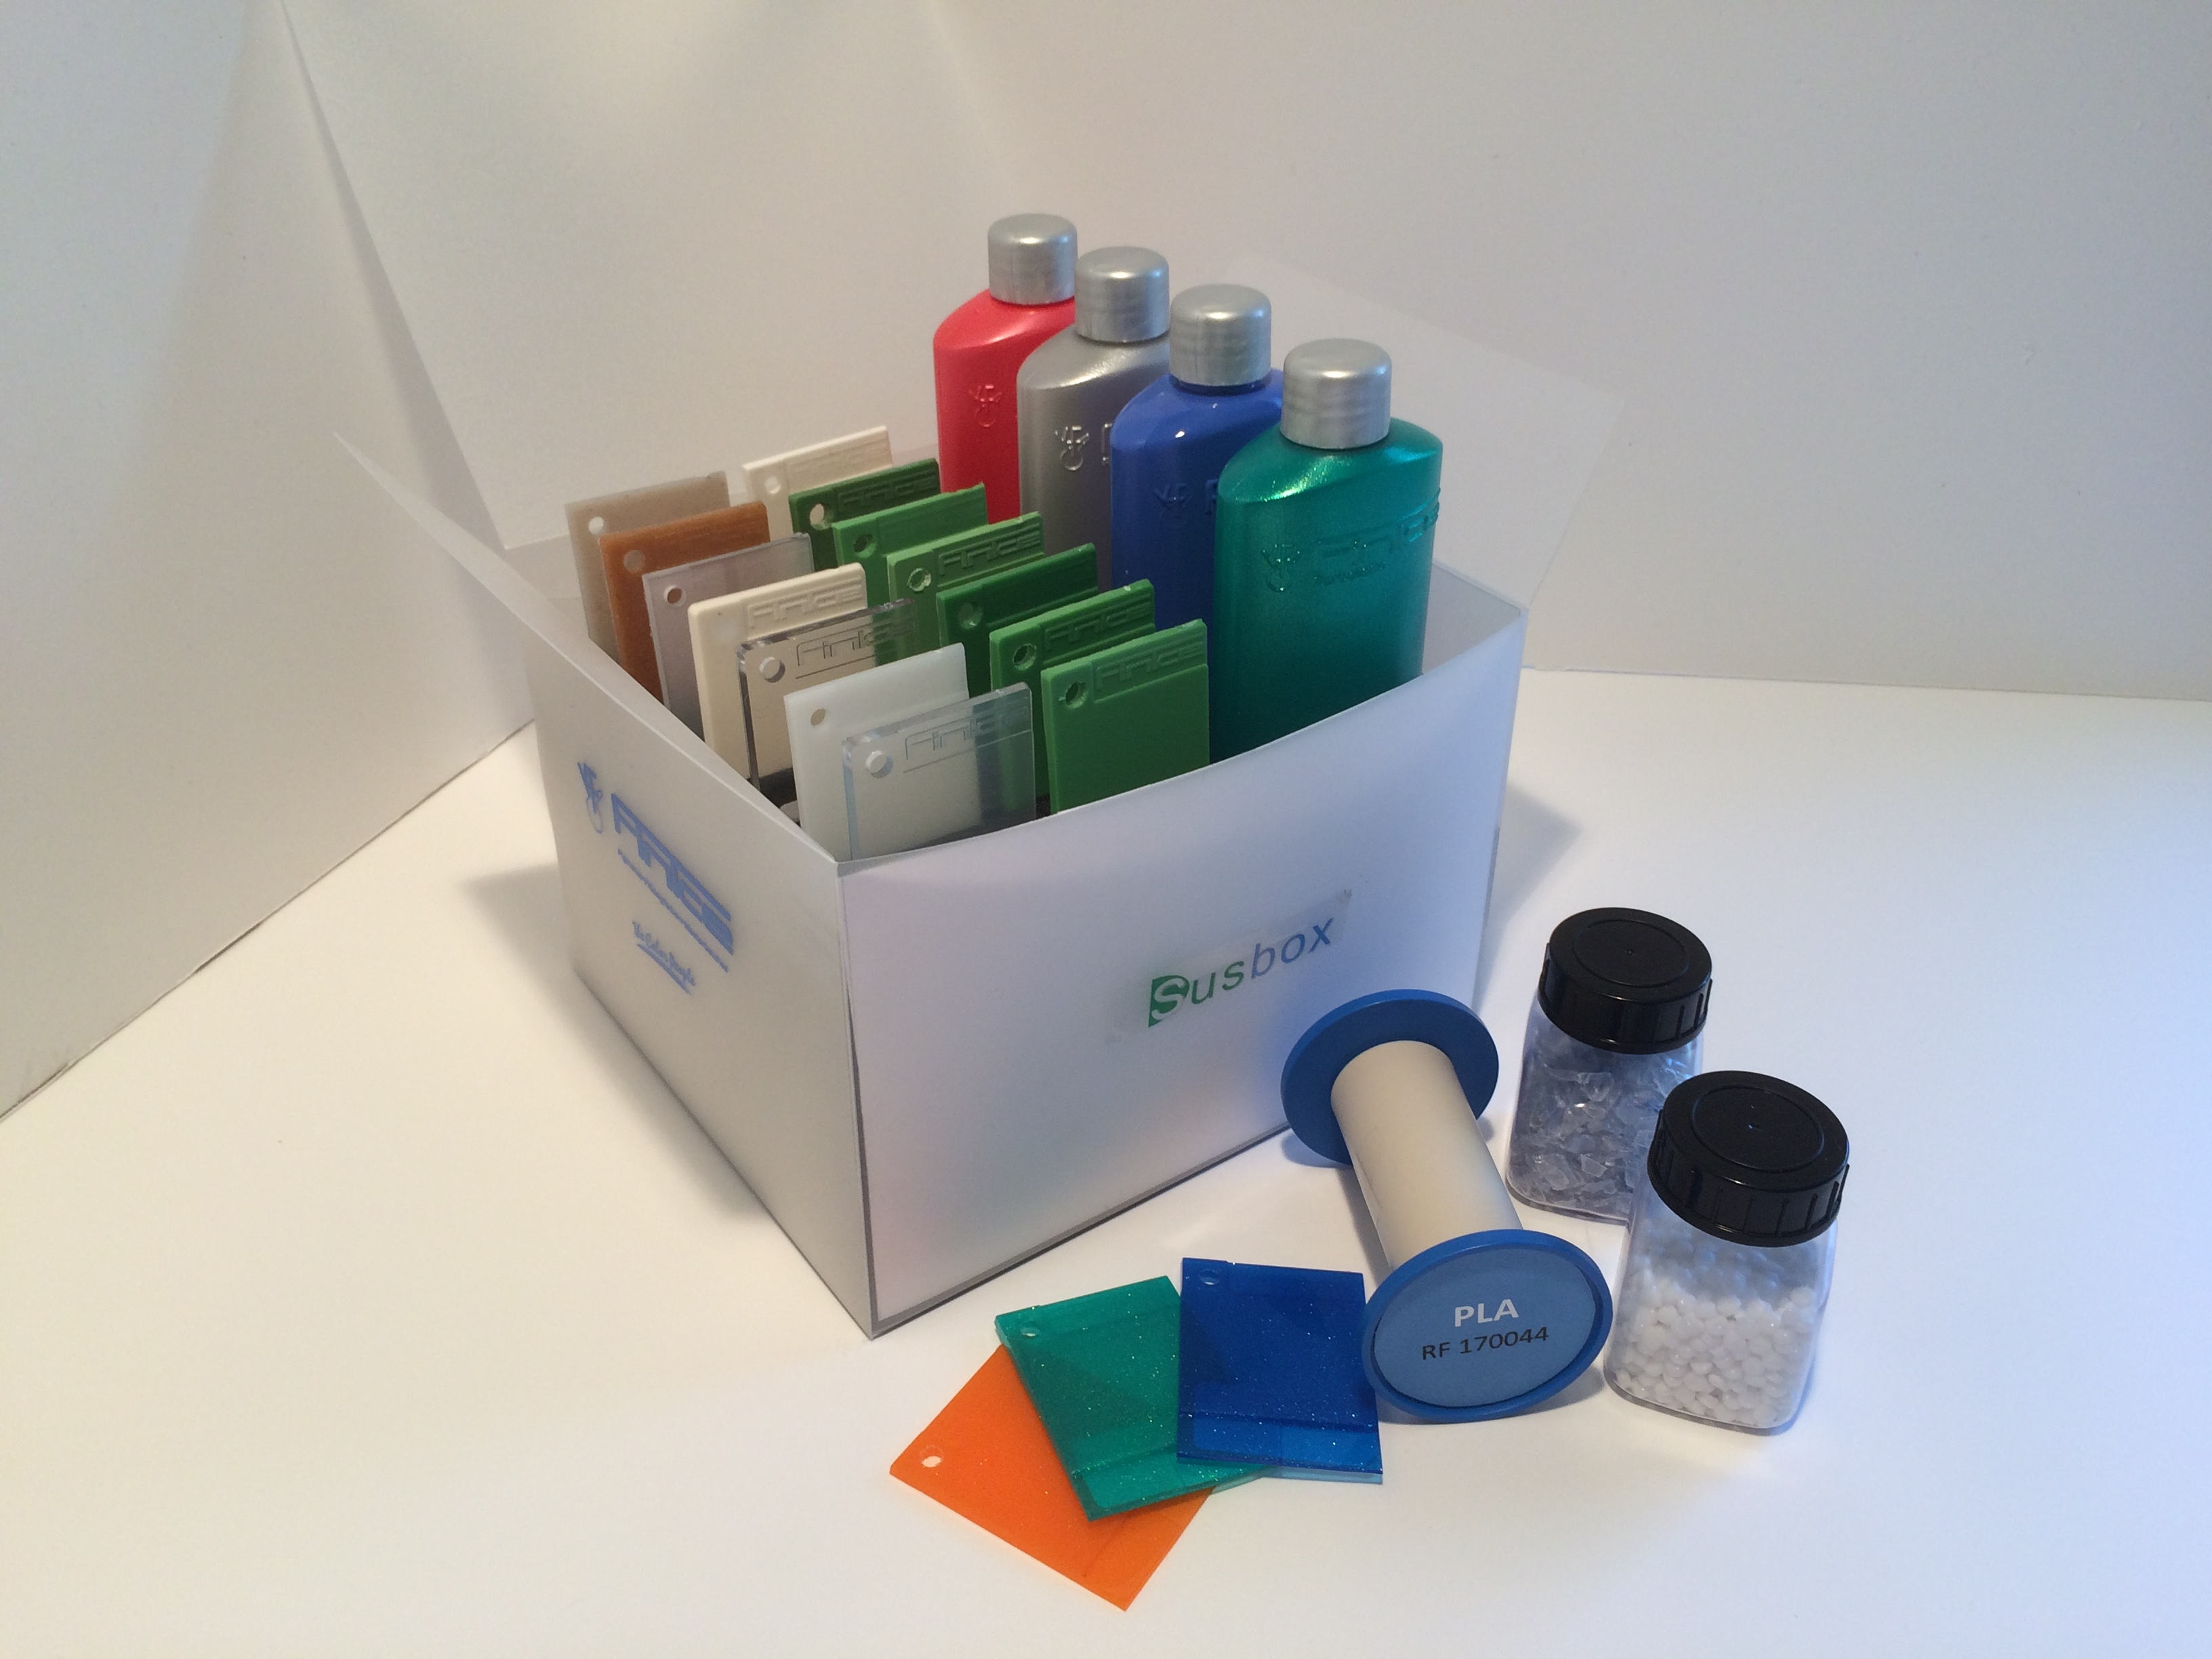 The Finke Susbox gives an overview of the possibilities for colouring sustainable plastics. (Source: Finke)